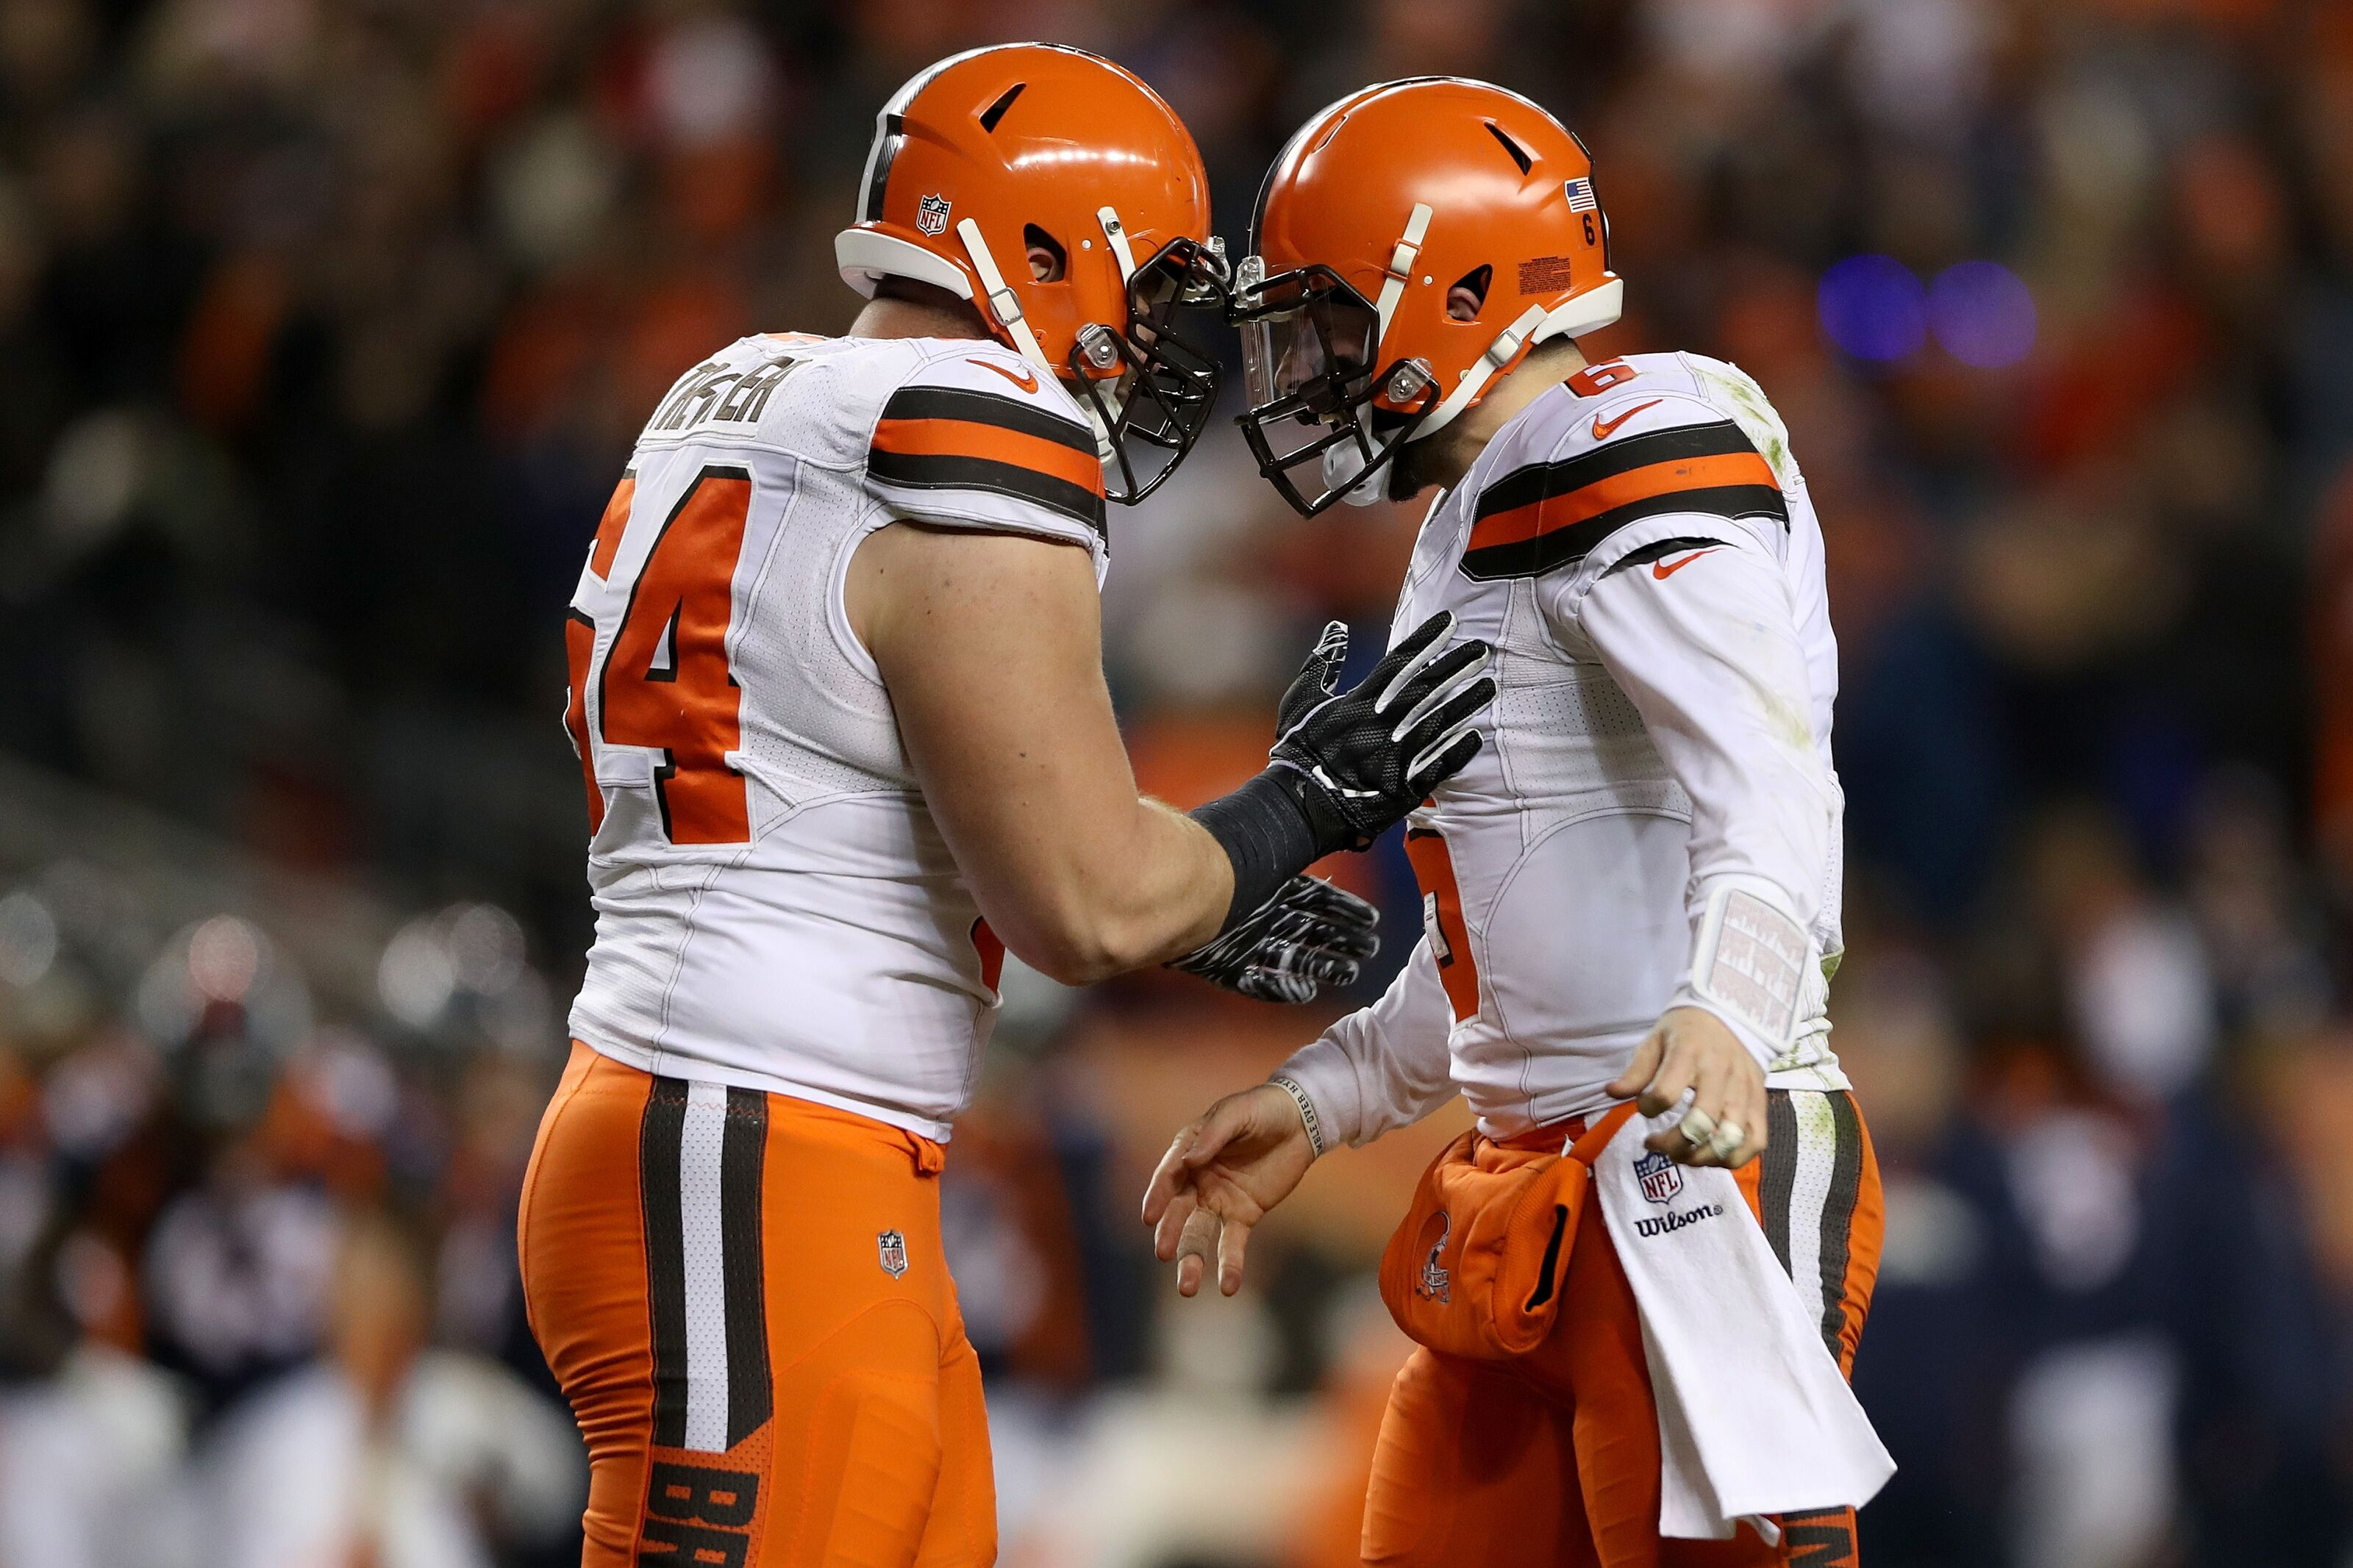 Will the offensive line be the downfall of the Cleveland Browns in 2019?